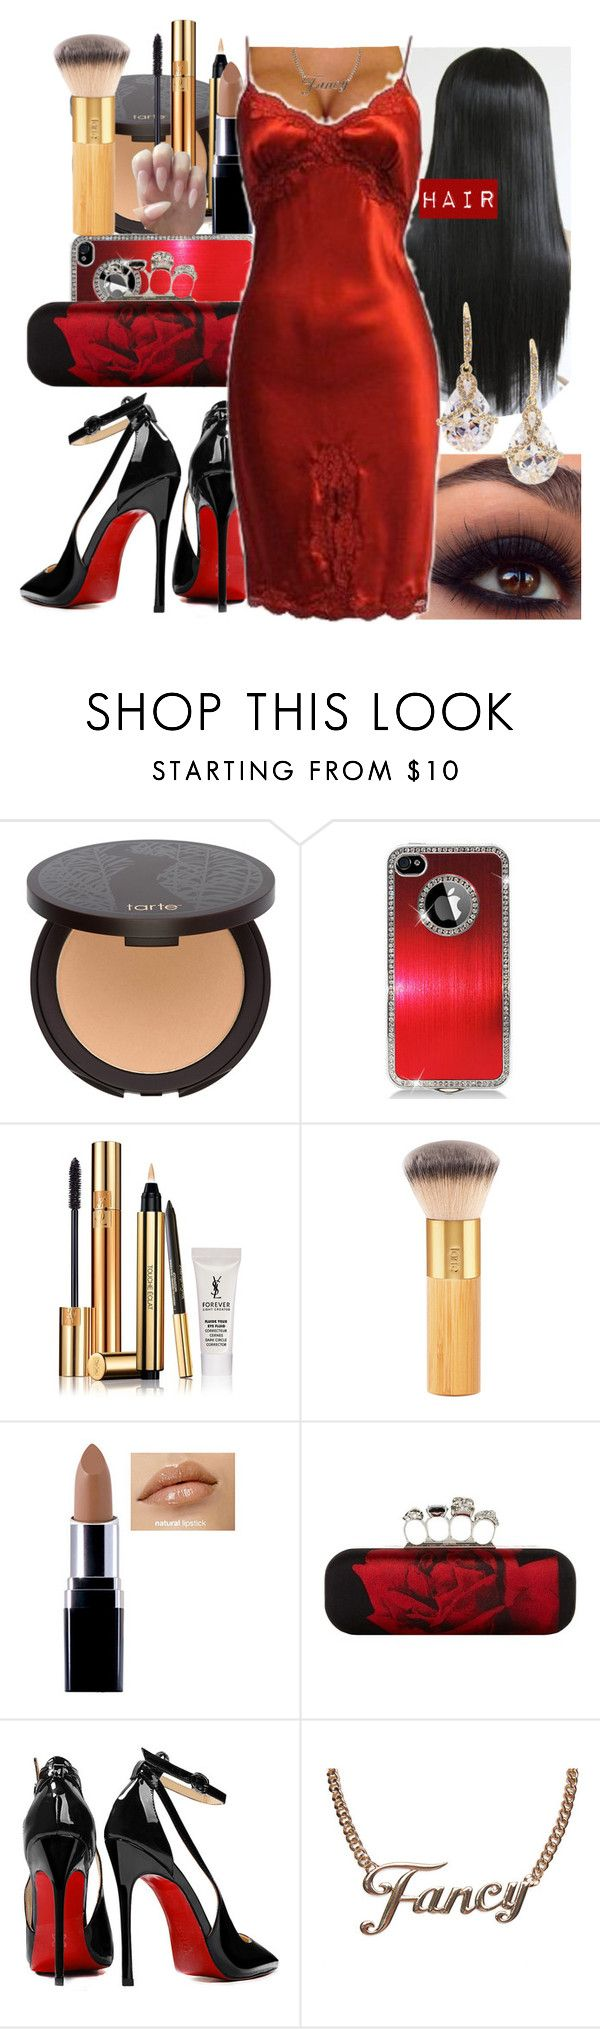 """Hip Hopera Club"" by missk2blue ❤ liked on Polyvore featuring tarte, Yves Saint Laurent, Alexander McQueen, Posh Girl, Freddy, Wet Seal and Fragments"